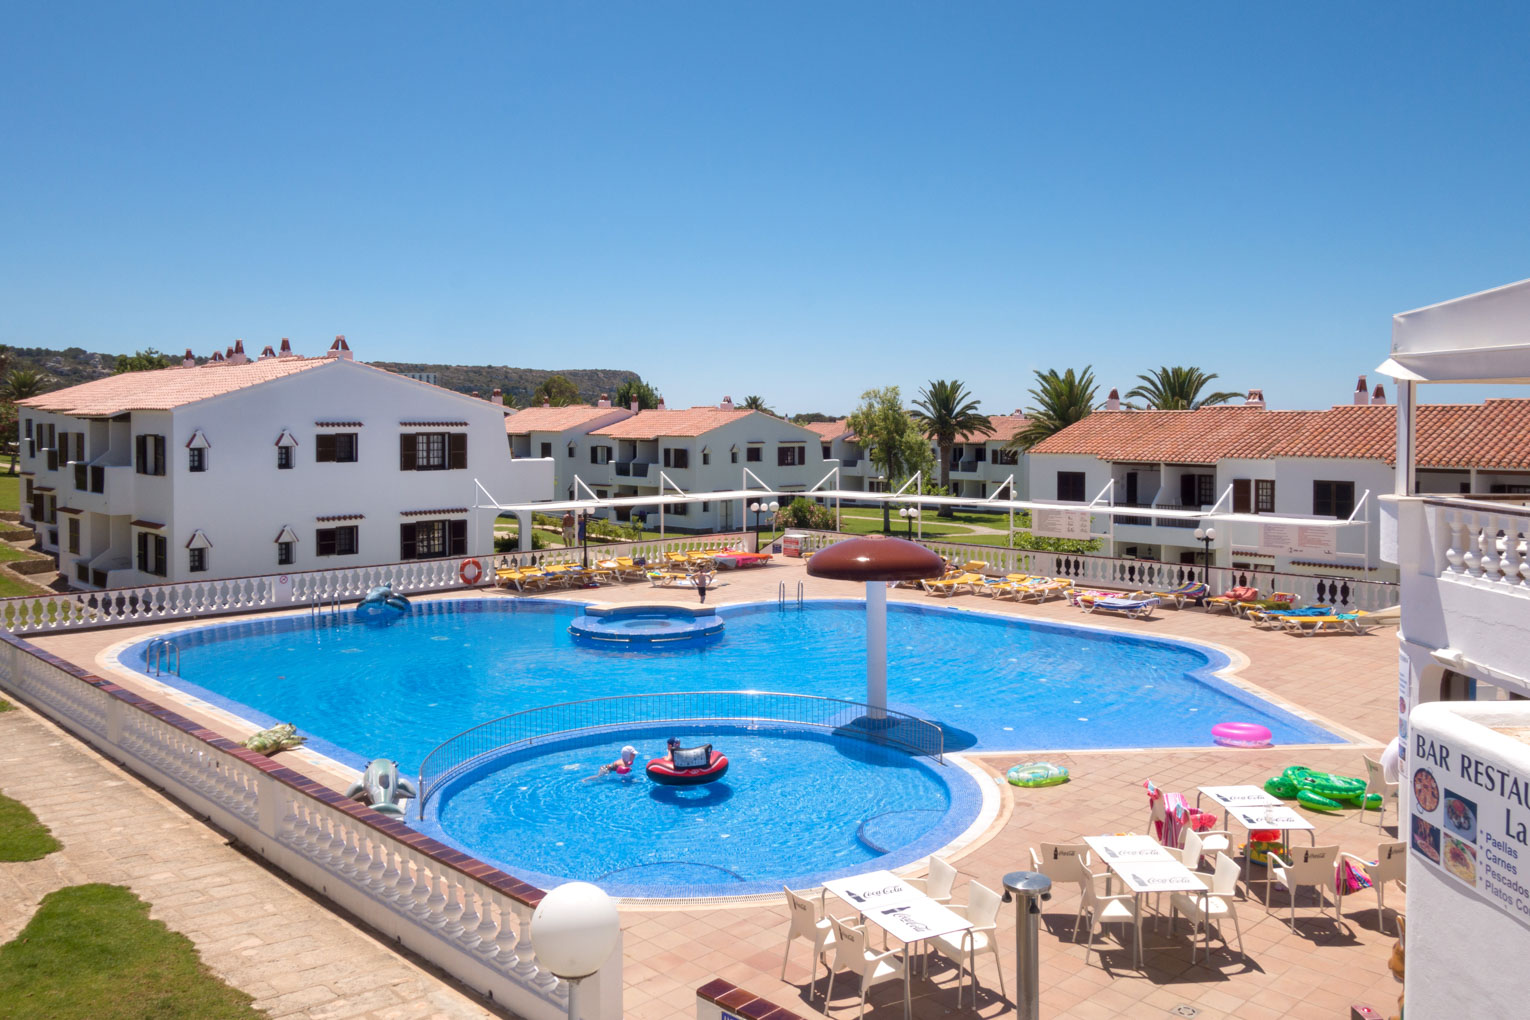 Son Bou Playa Apartments (2 bedroom) Picture 3